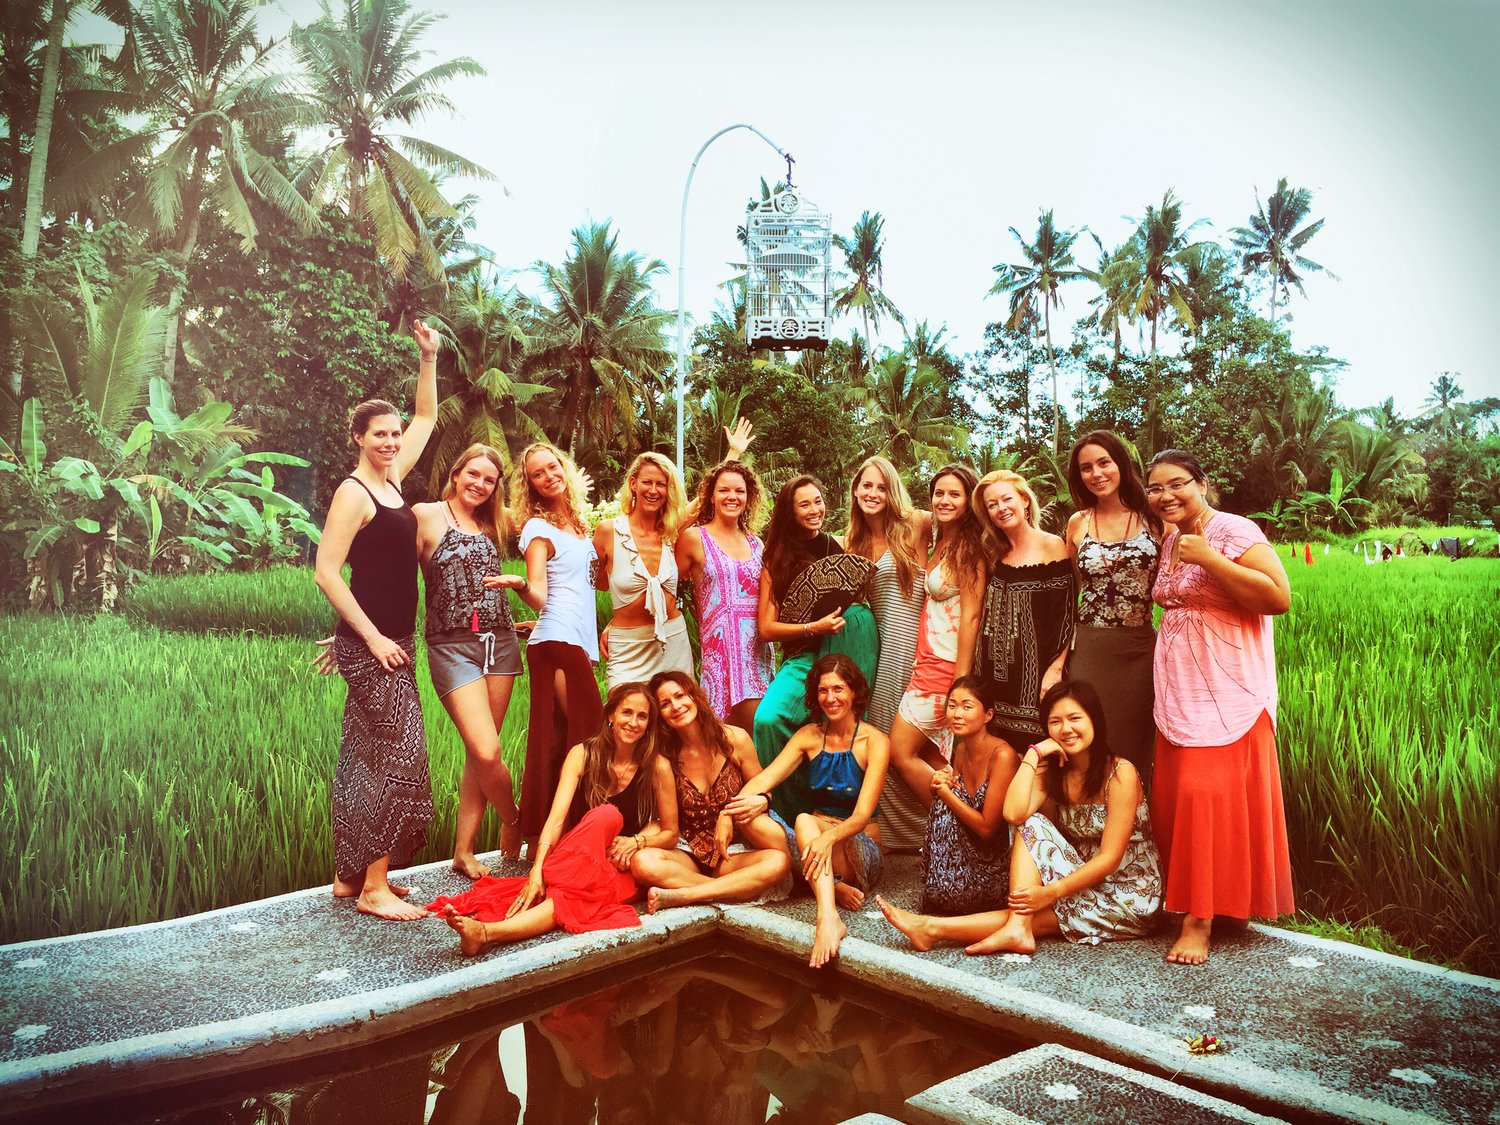 Sacred sister circle at the Bali Yoni Egg workshop with Kheyrene Danu of Women's Thrive